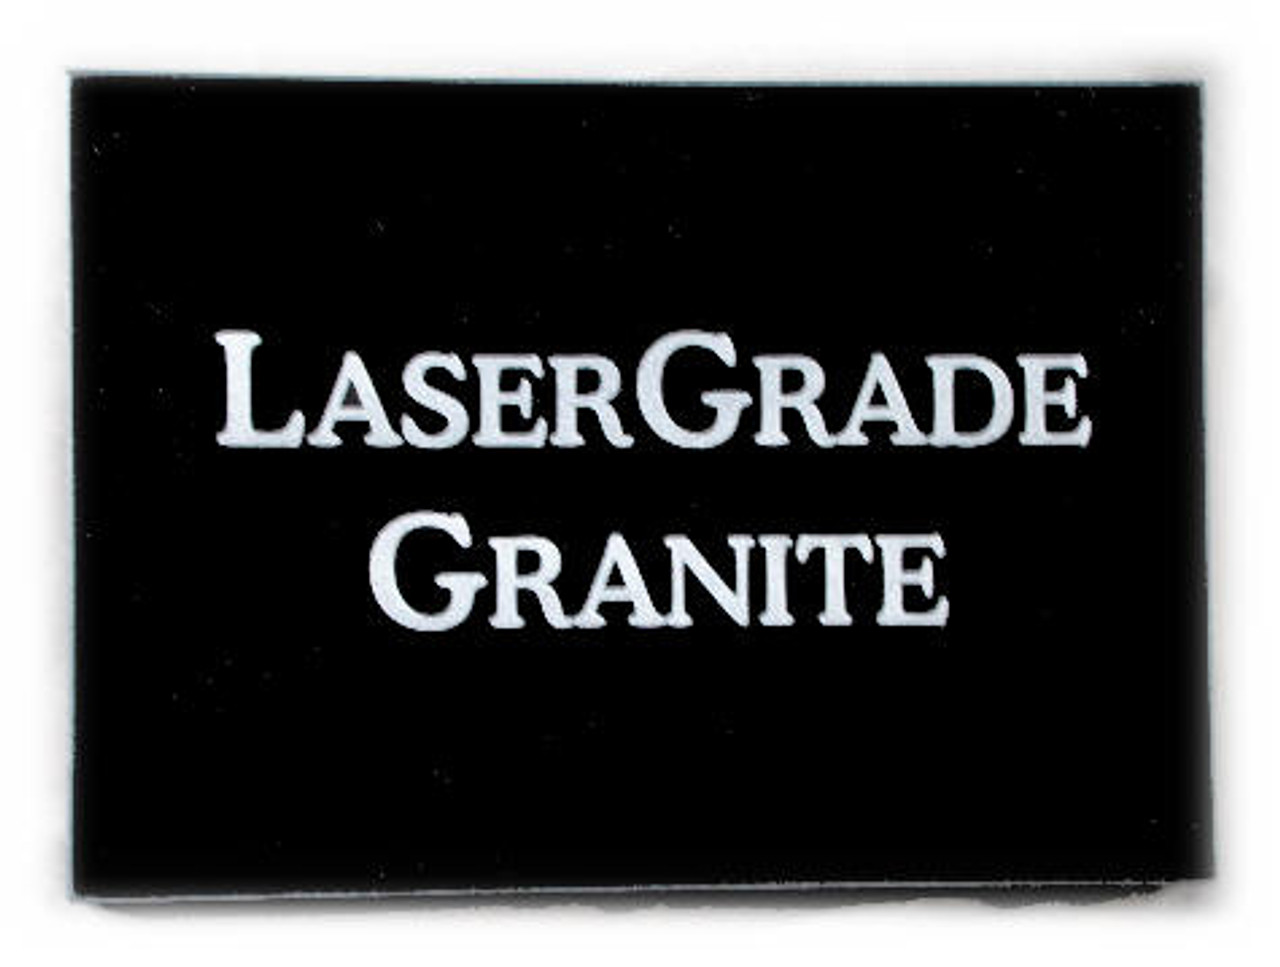 "G-MB-12 x 24 EP, LaserGrade, MB Black Granite, 12"" x 24"" x 7-8mm"" , Edges Polished, (5 face polished) - Case of 5"